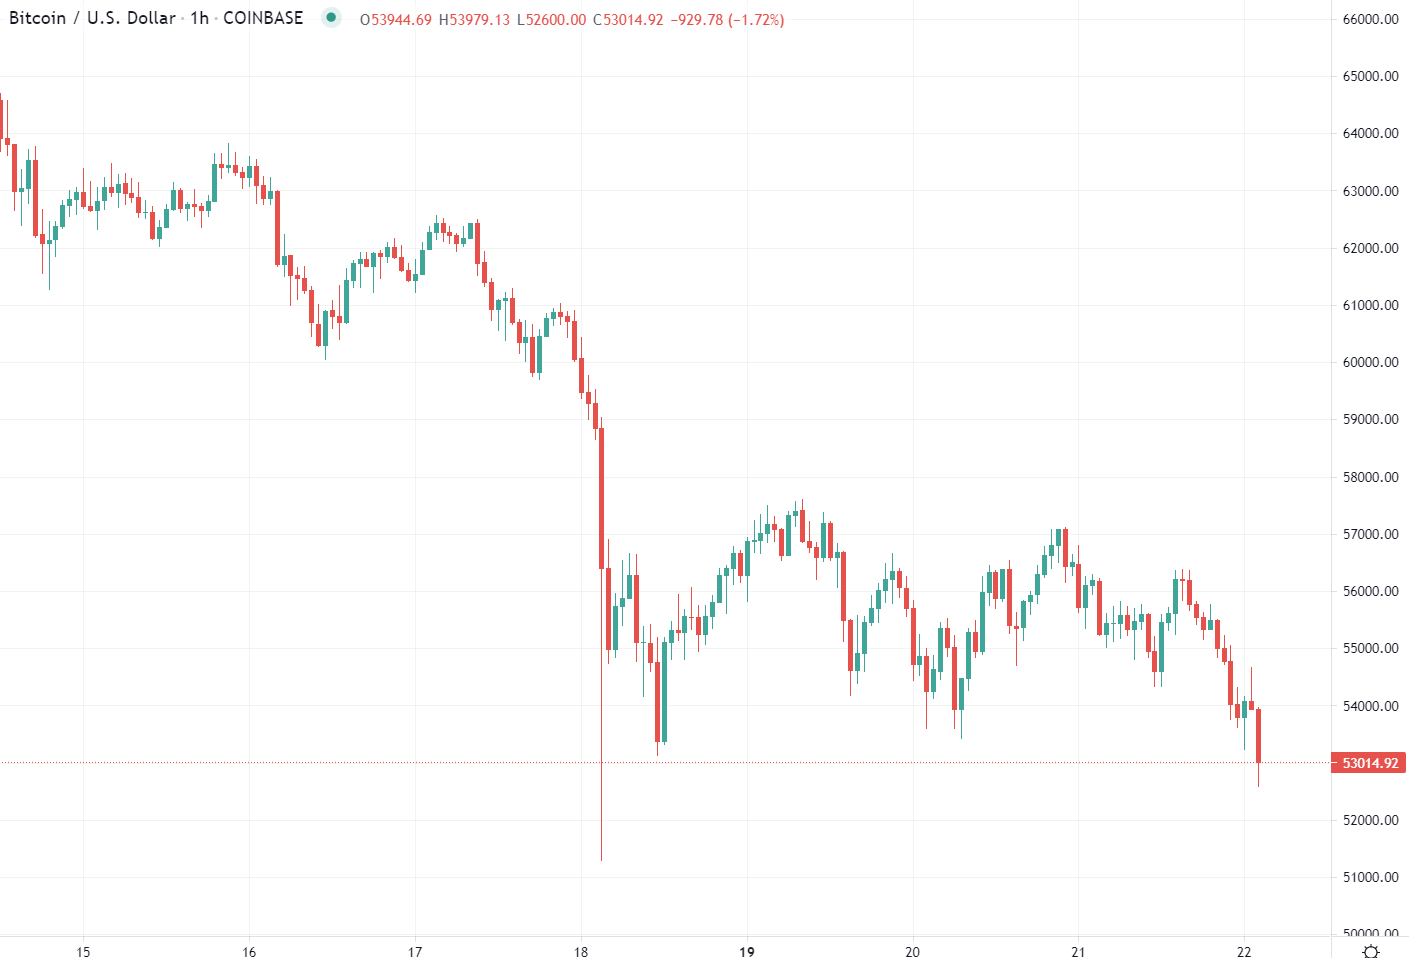 BTC dropped over the weekend last and has not managed much of a recovery.